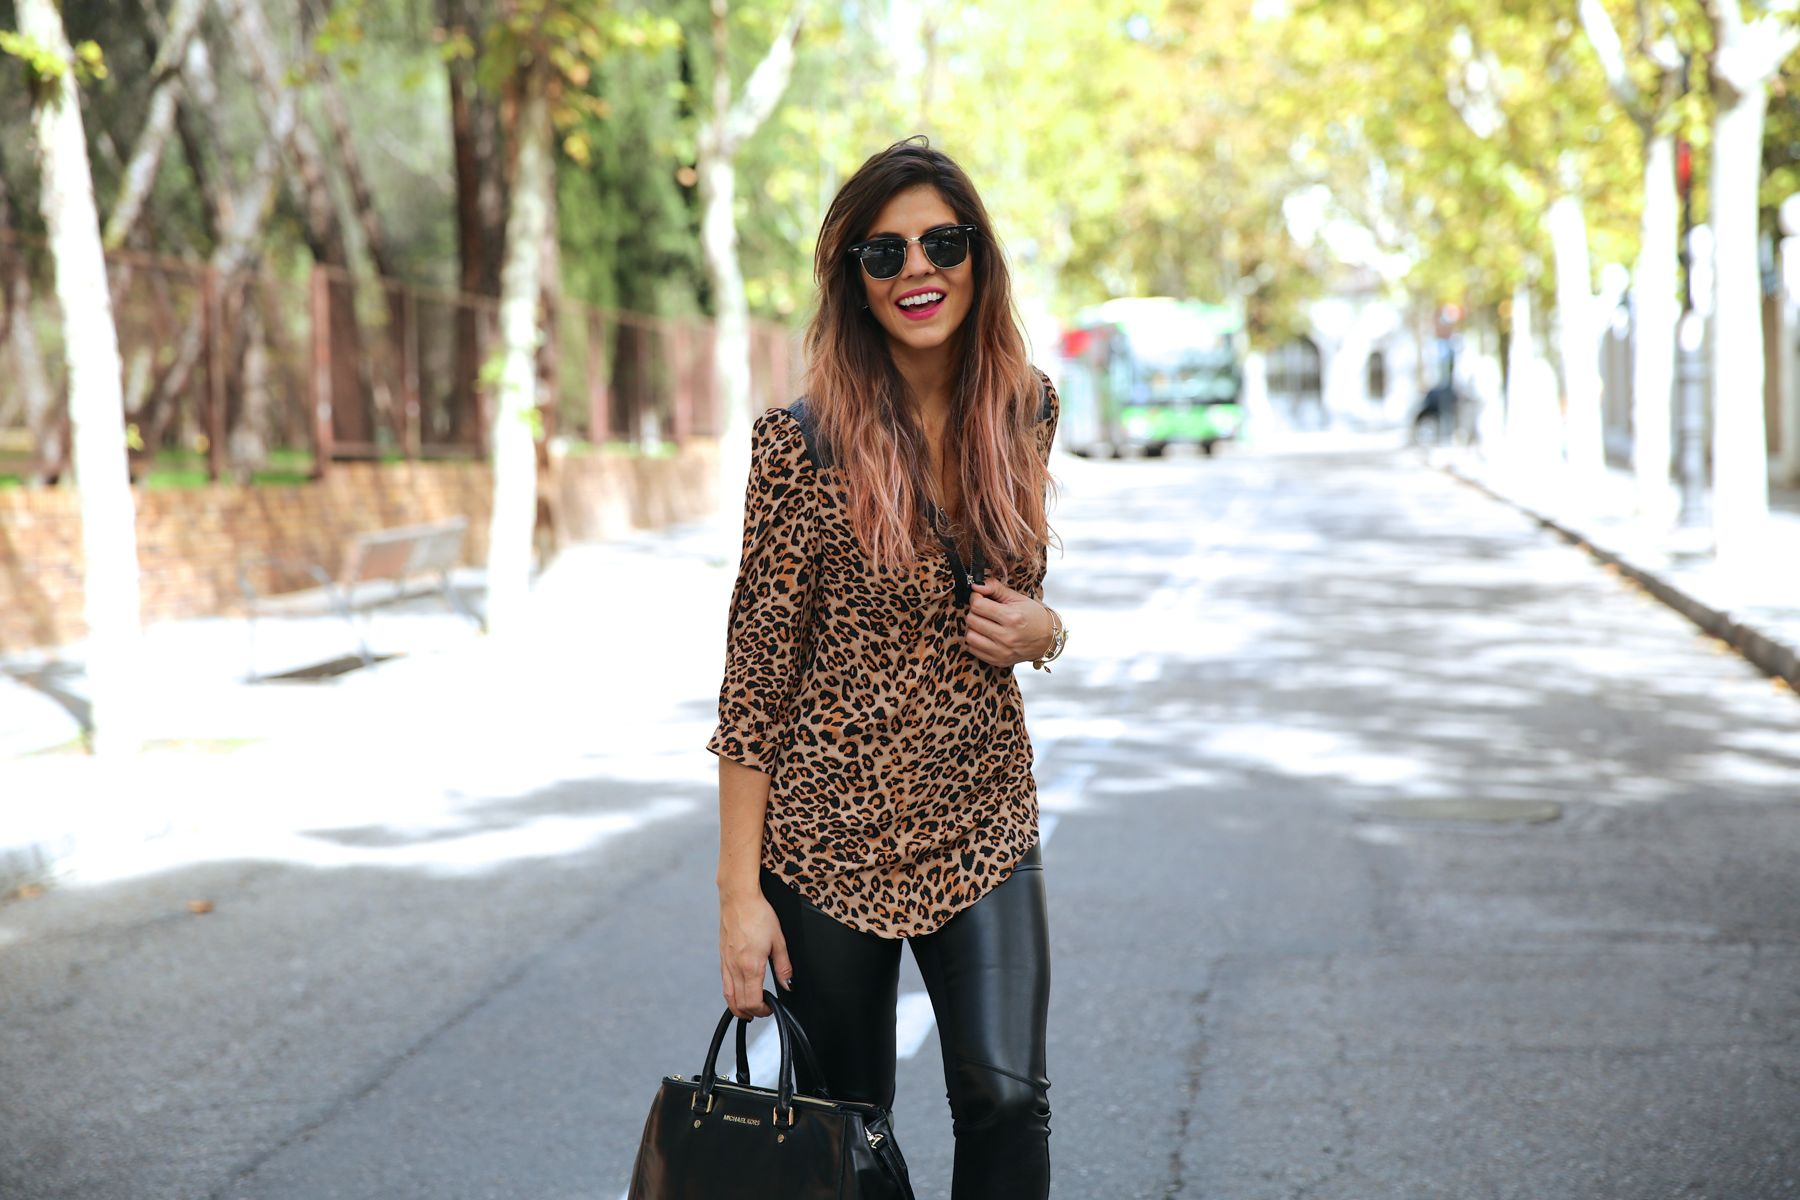 trendy_taste-look-outfit-street_style-ootd-blog-blogger-fashion_spain-moda_españa-leo_print-leopardo-converse-all_star-michael_kors-leggings-clubmaster-9